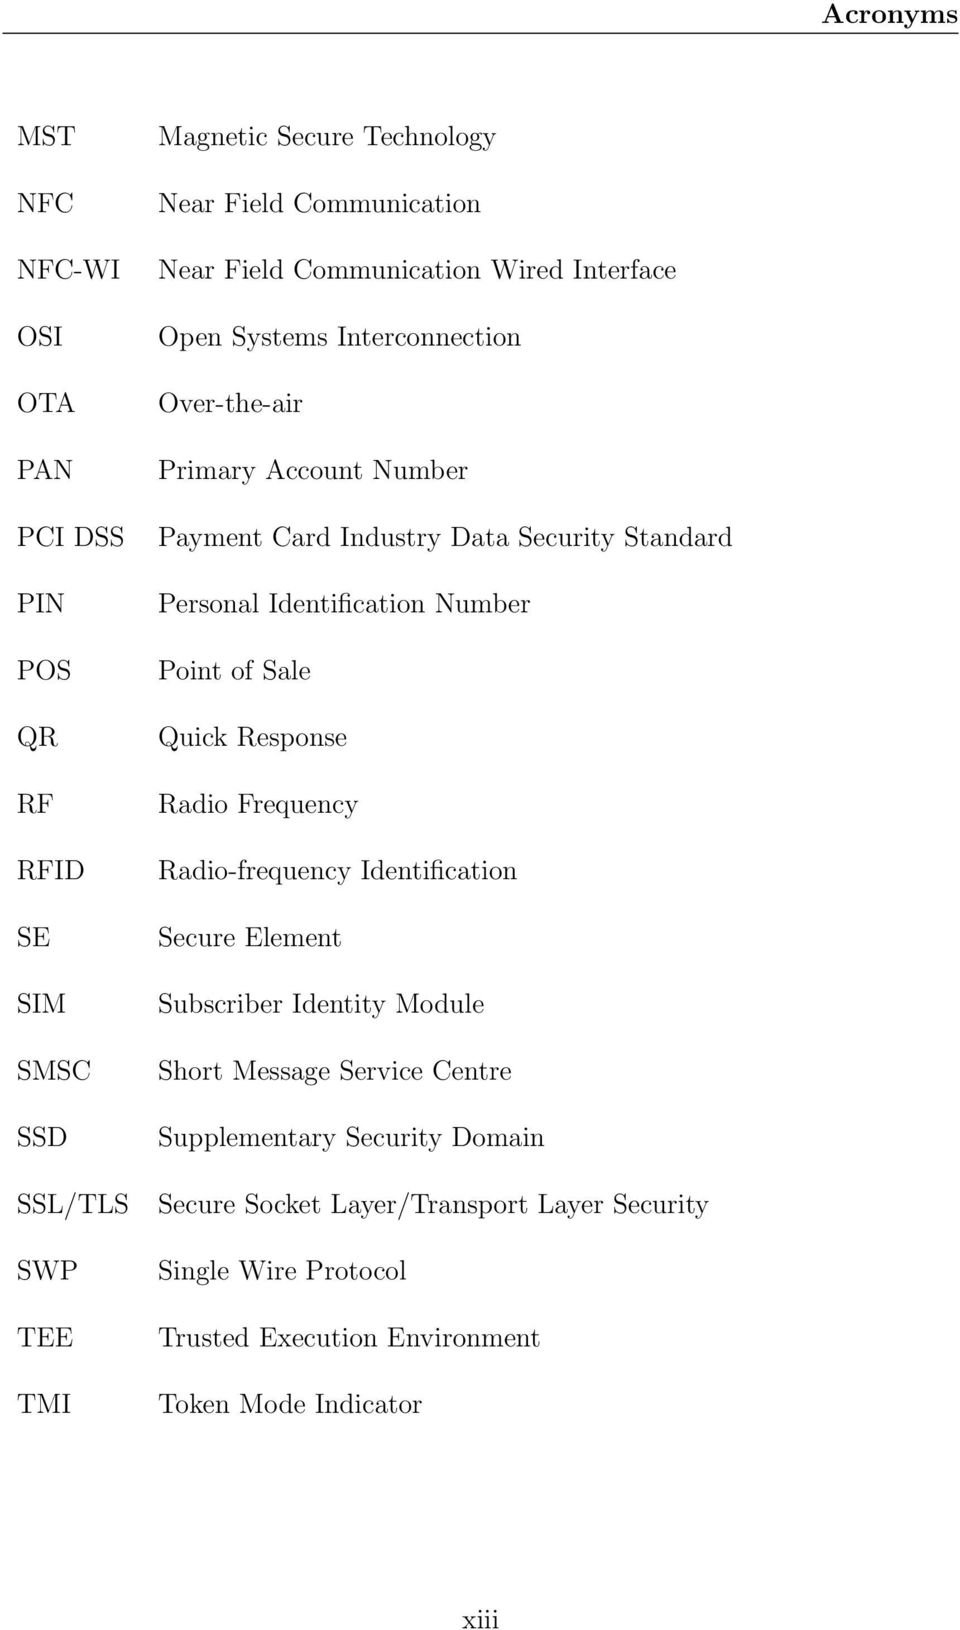 Security Analysis of Mobile Payment Systems - PDF